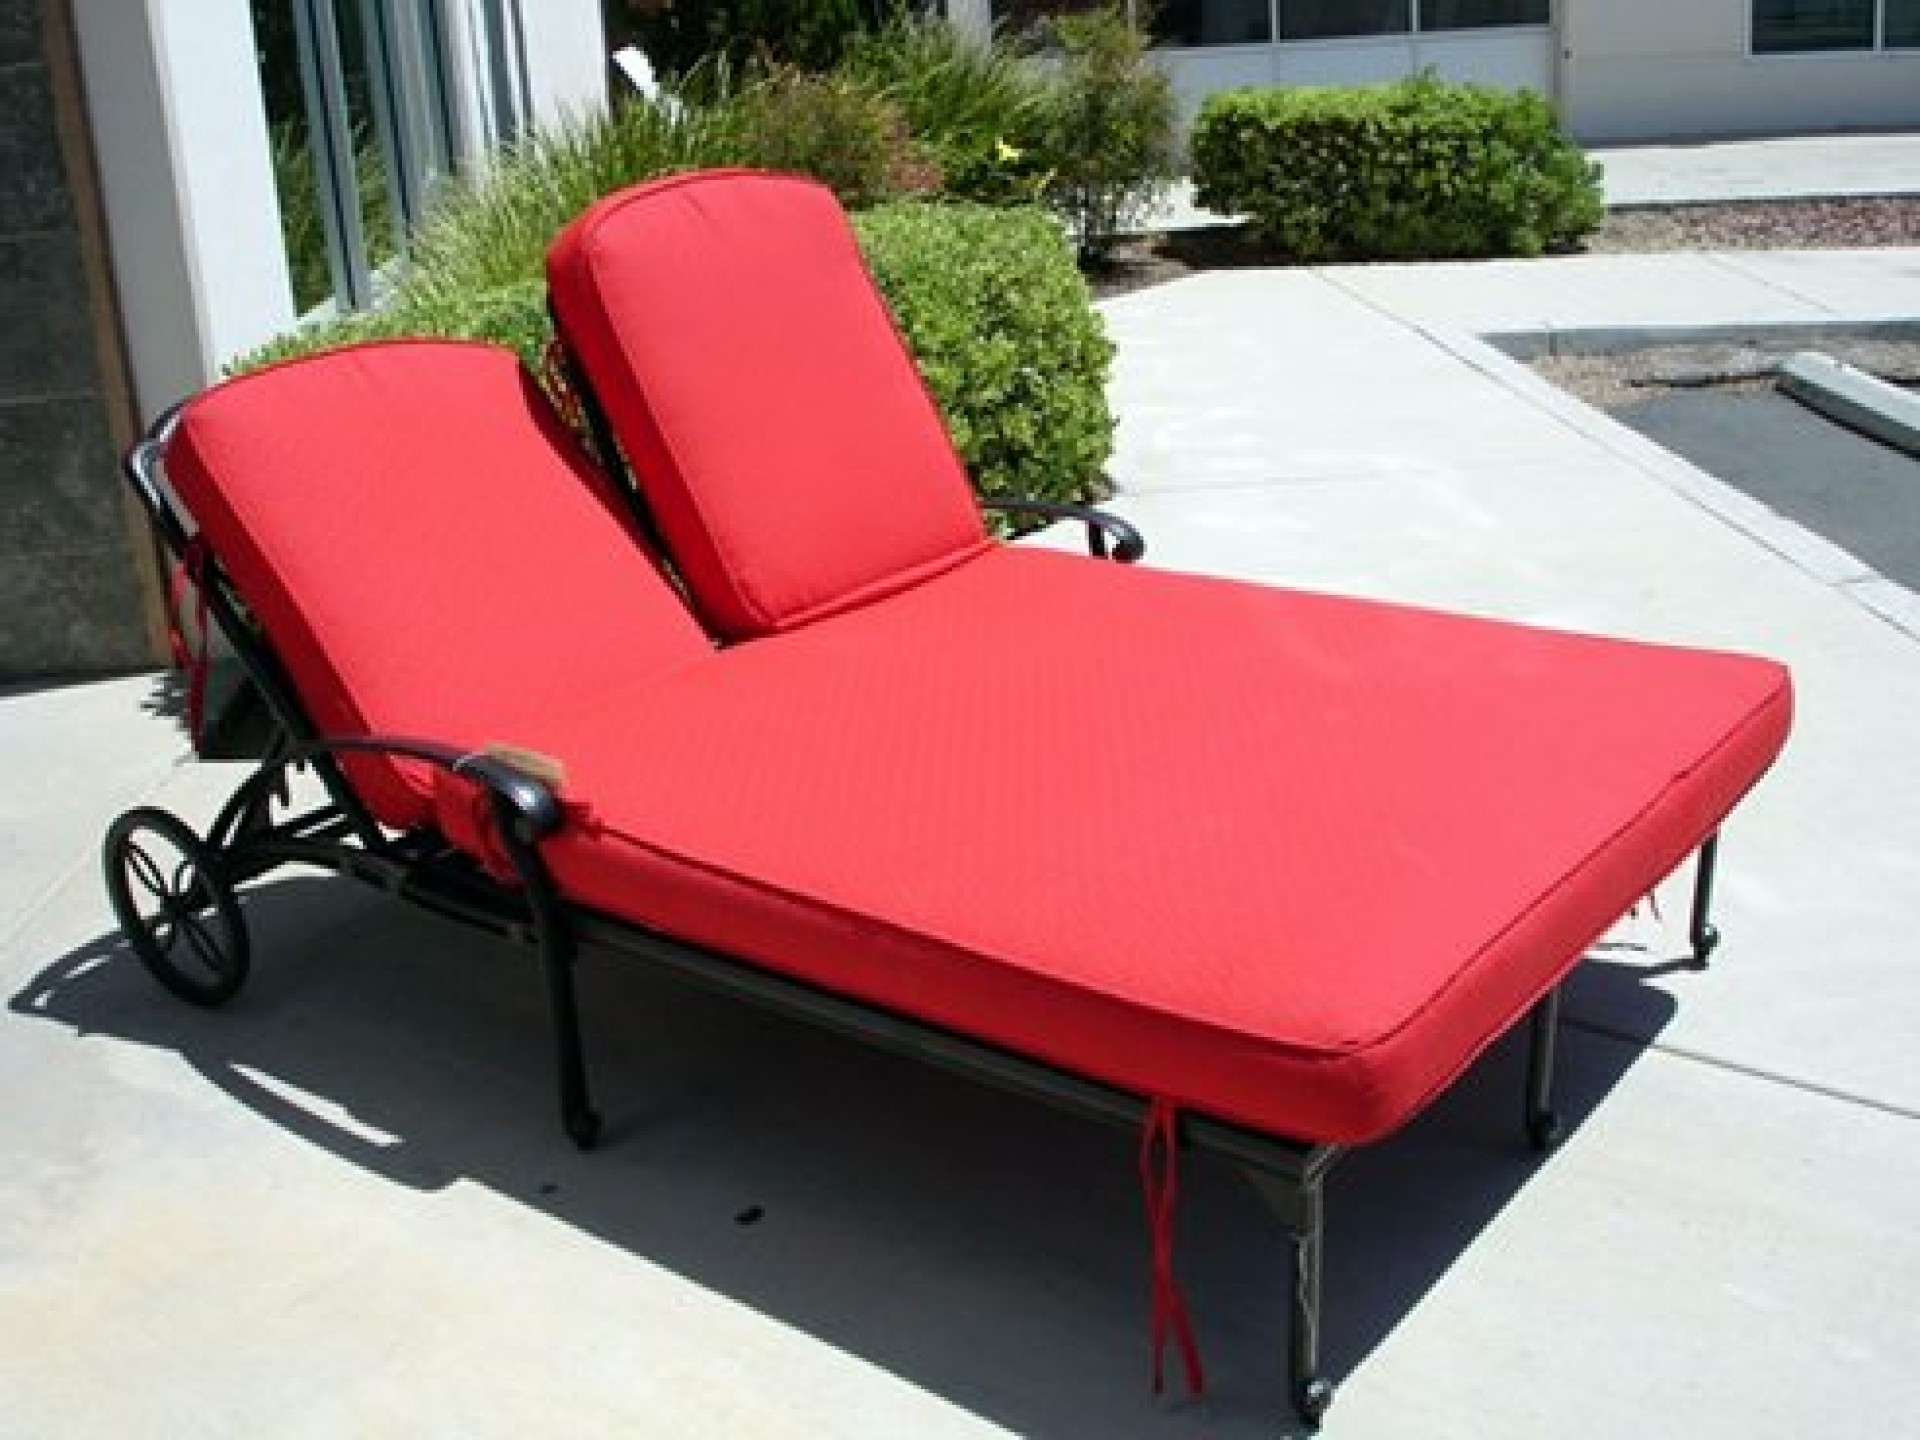 Newest Cushion For Chaise Lounge Chair • Lounge Chairs Ideas Inside Double Chaise Lounge Cushion (View 3 of 15)